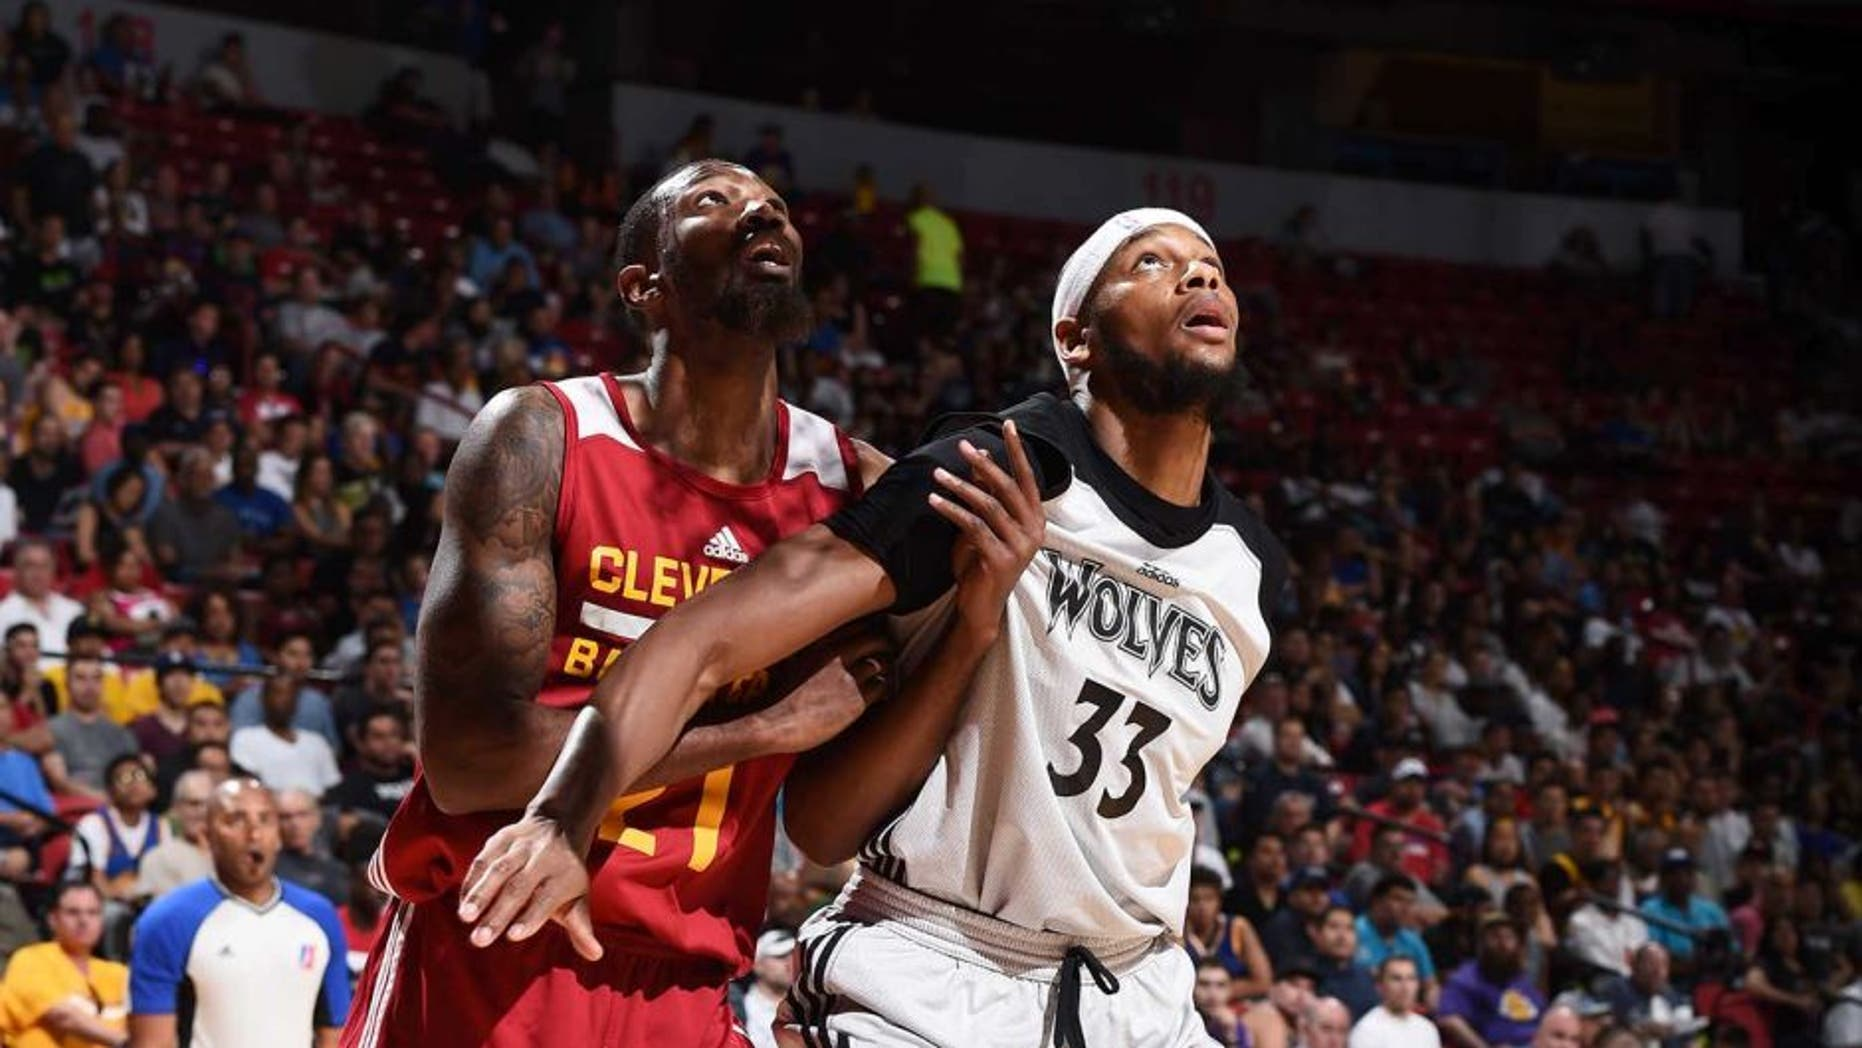 LAS VEGAS, NV - JULY 11: Cory Jefferson #21 of the Cleveland Cavaliers fights for position against Adreian Payne #33 of the Minnesota Timberwolves during the 2016 NBA Las Vegas Summer League on July 11, 2016 at The Thomas & Mack Center in Las Vegas, Nevada. NOTE TO USER: User expressly acknowledges and agrees that, by downloading and or using this photograph, user is consenting to the terms and conditions of Getty Images License Agreement. Mandatory Copyright Notice: Copyright 2016 NBAE (Photo by Garrett Ellwood/NBAE via Getty Images)